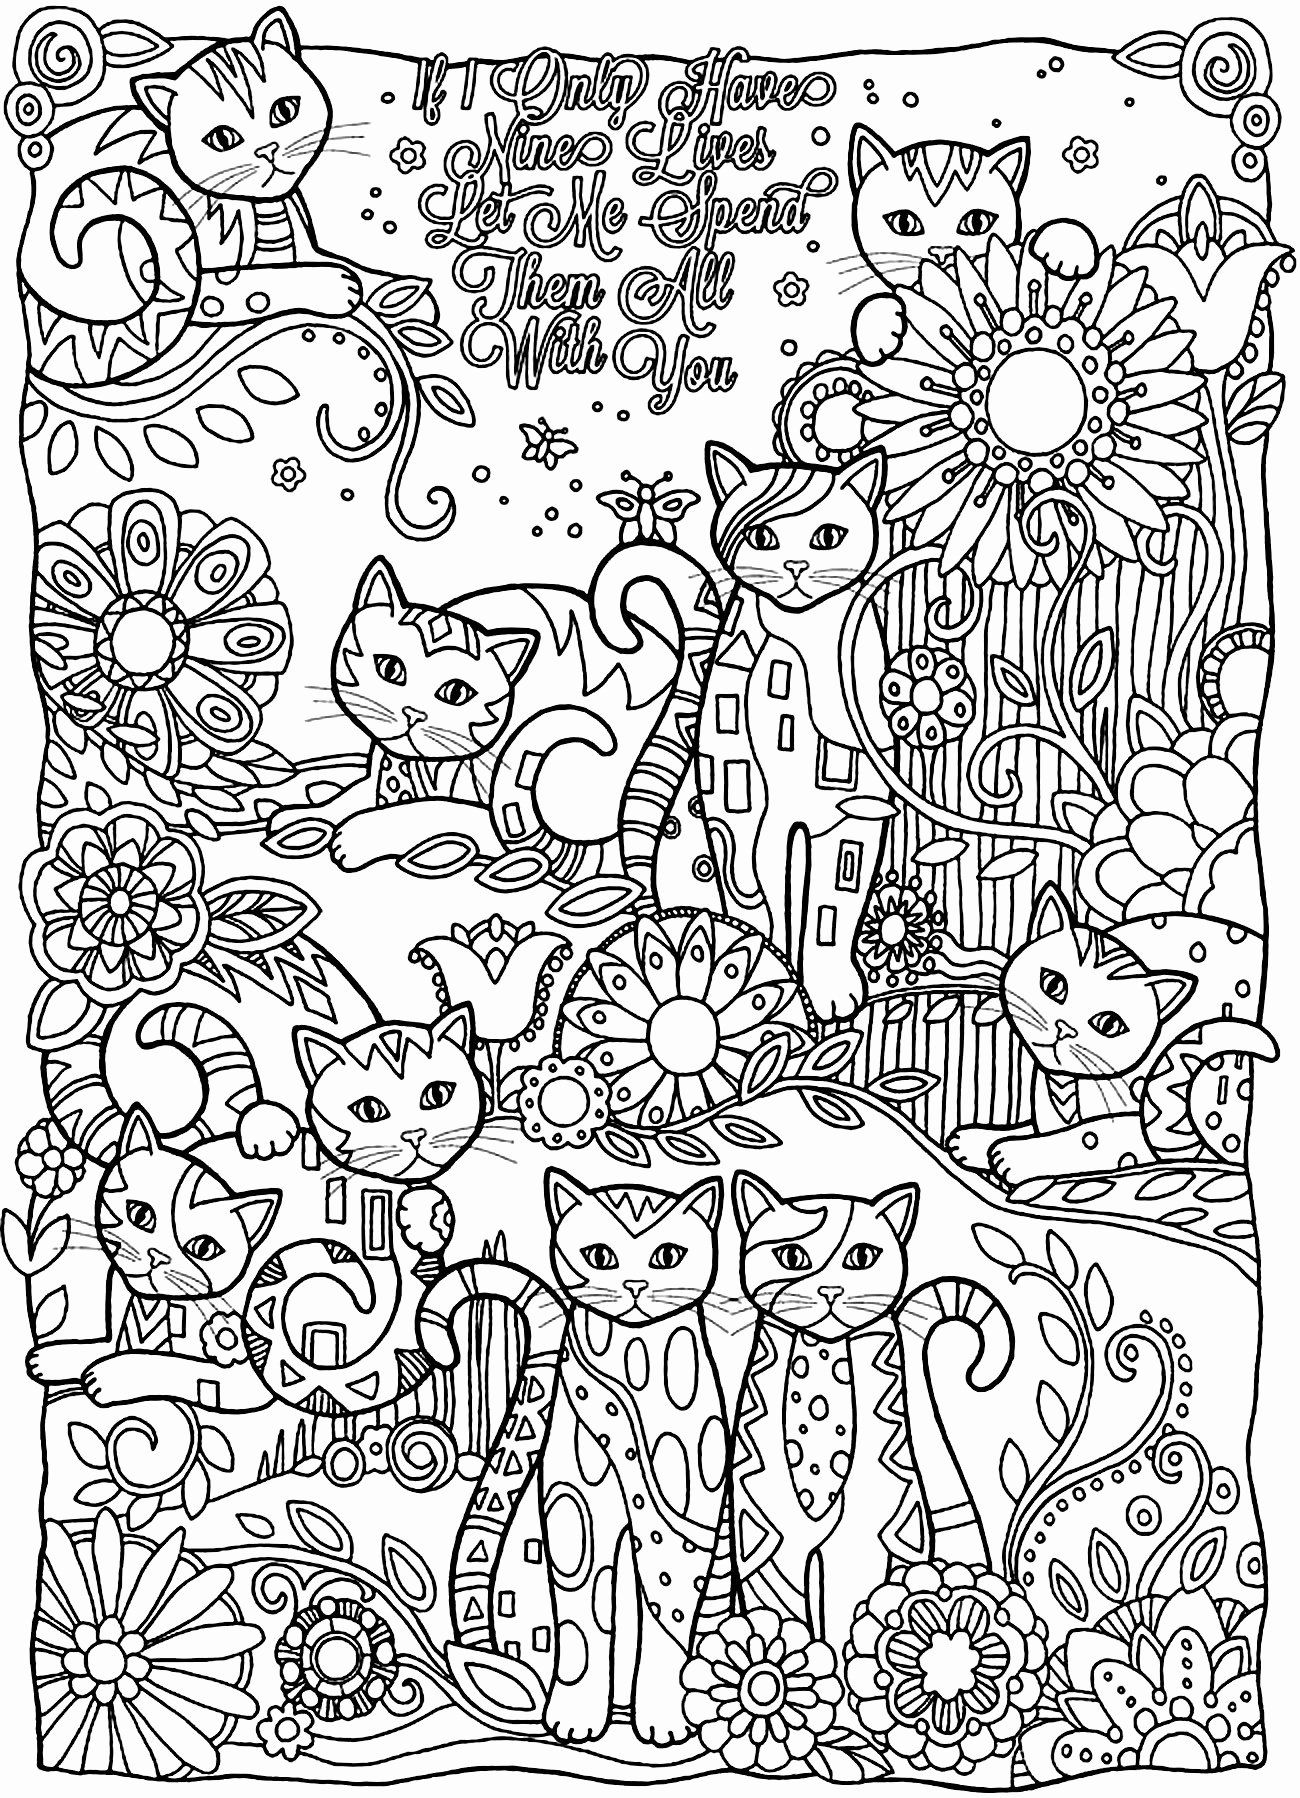 Coloring Fun Color By Number Apk Elegant April Coloring Pages 18 Best Cool Coloring Pag Unicorn Coloring Pages Coloring Pages Inspirational Bear Coloring Pages